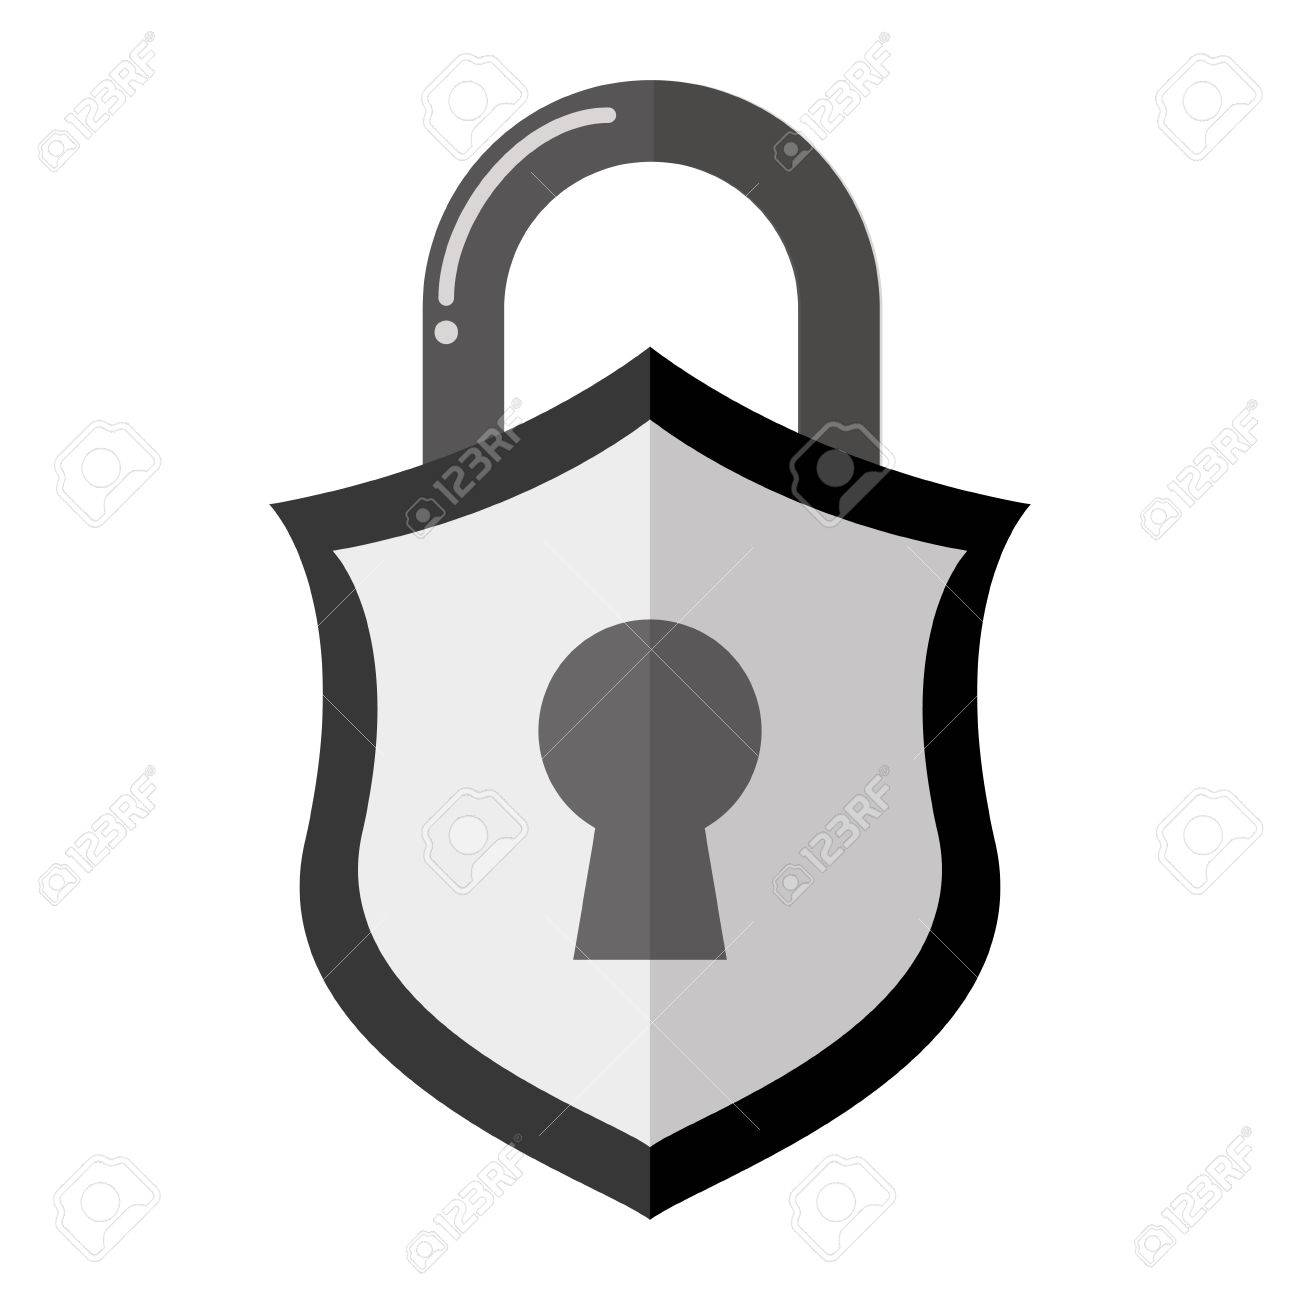 1300x1300 Padlock Security Shield Vector Icon Illustration Graphic Design